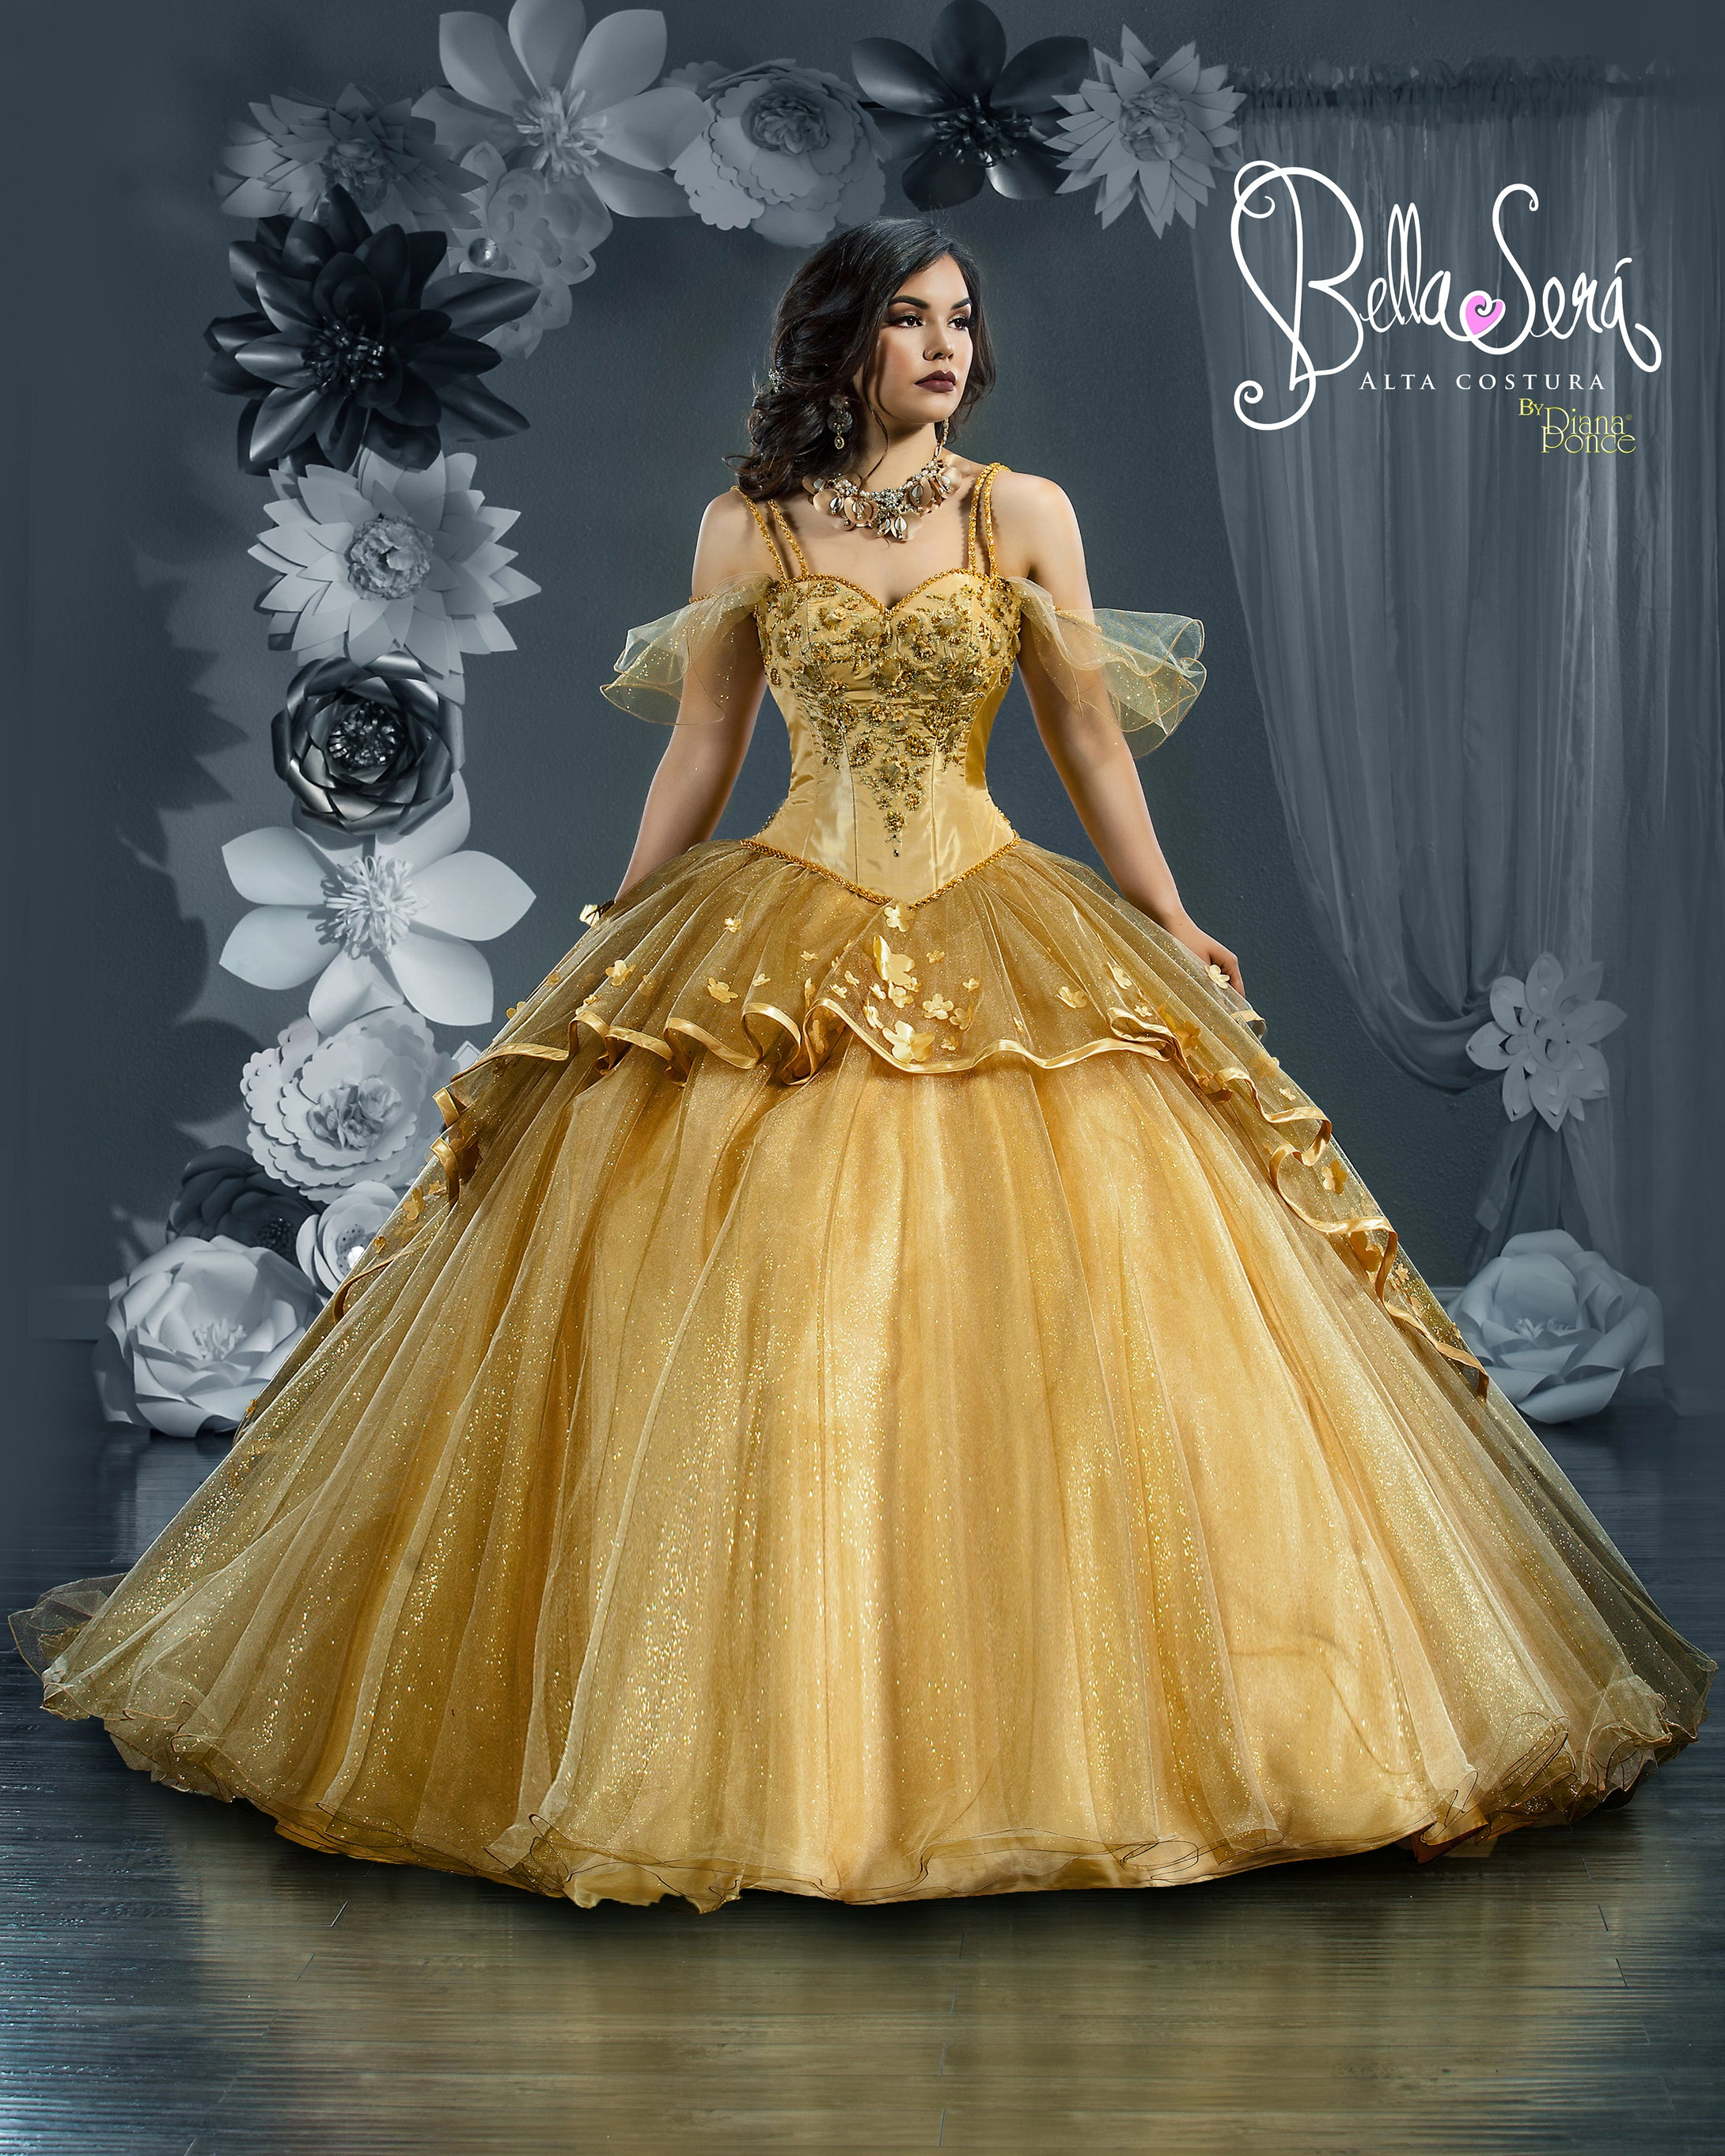 Quinceañera Dress Style 1802 - bella-sera-dresses.com